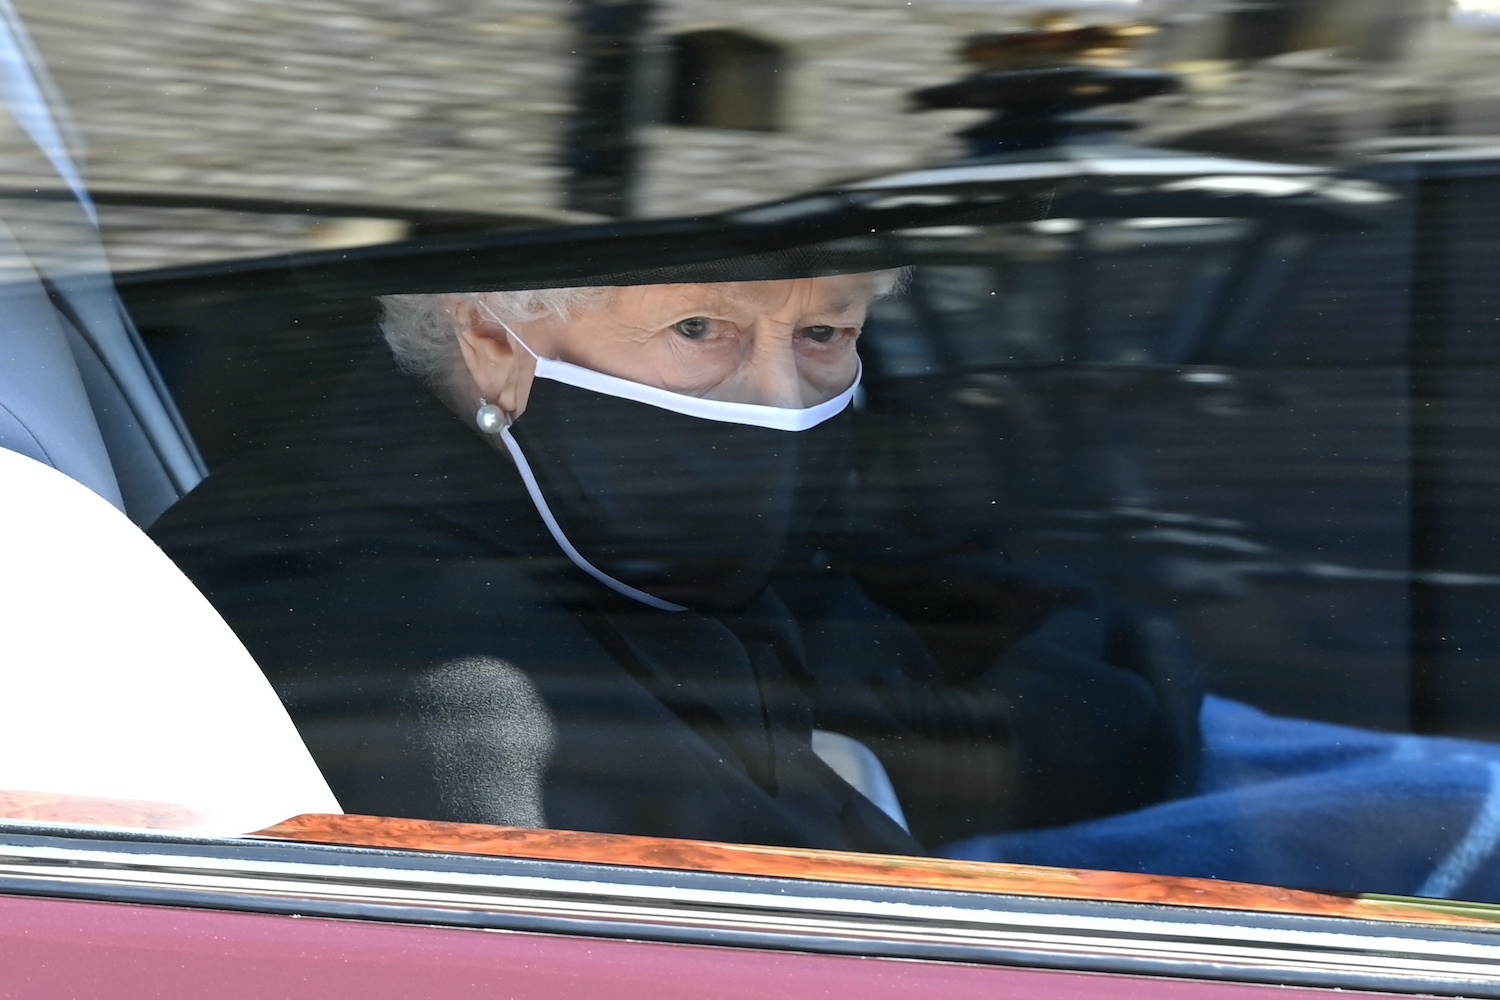 Queen Elizabeth arrives for the funeral of Prince Philip at Windsor Castle on Saturday. (Pool Photo via Reuters)